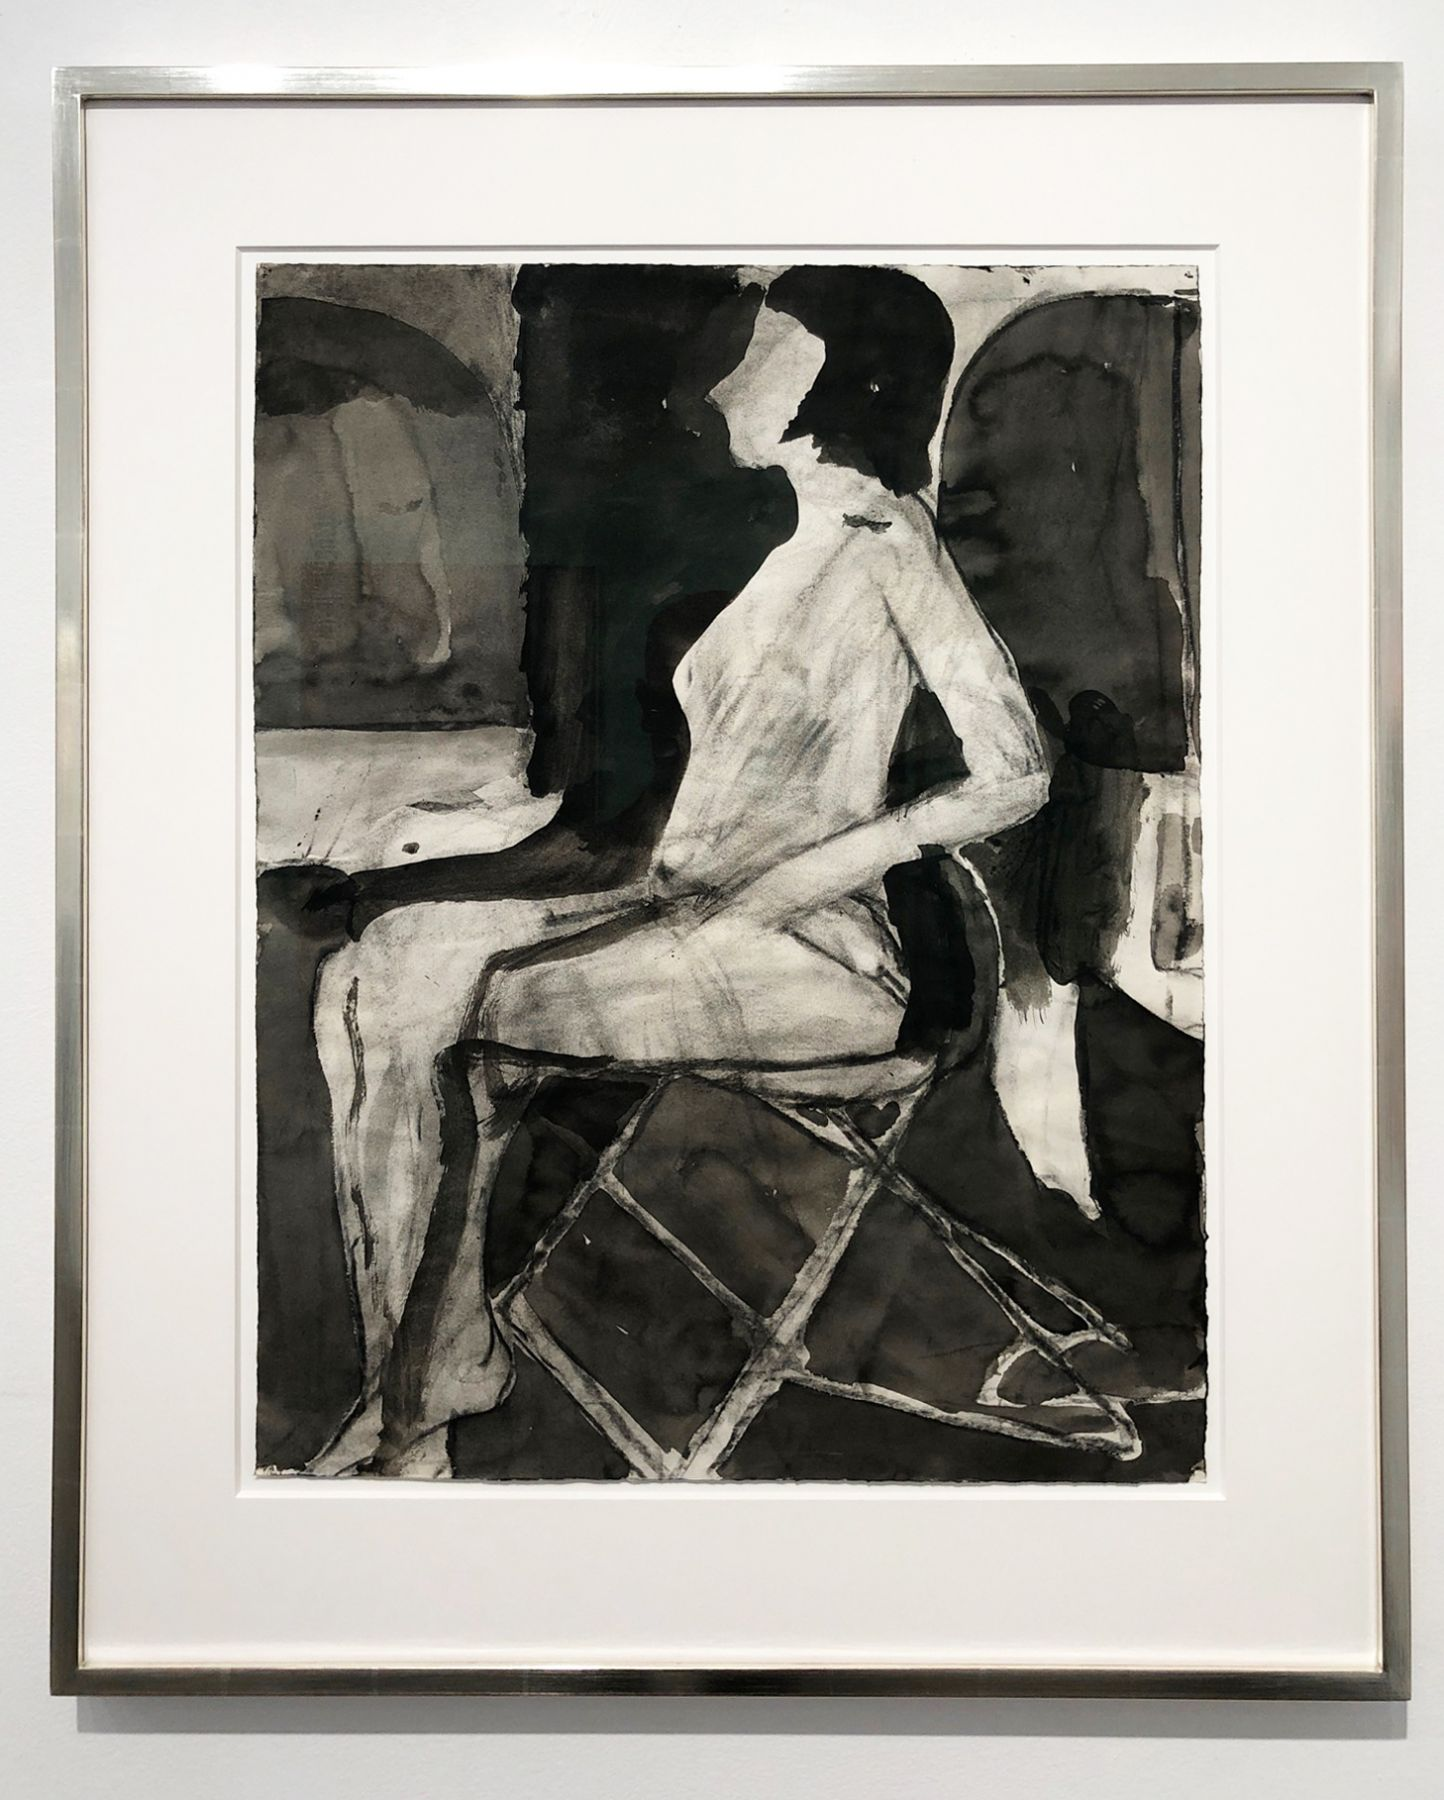 Richard Diebenkorn, Untitled (Seating Nude on Folding Chair), 1967